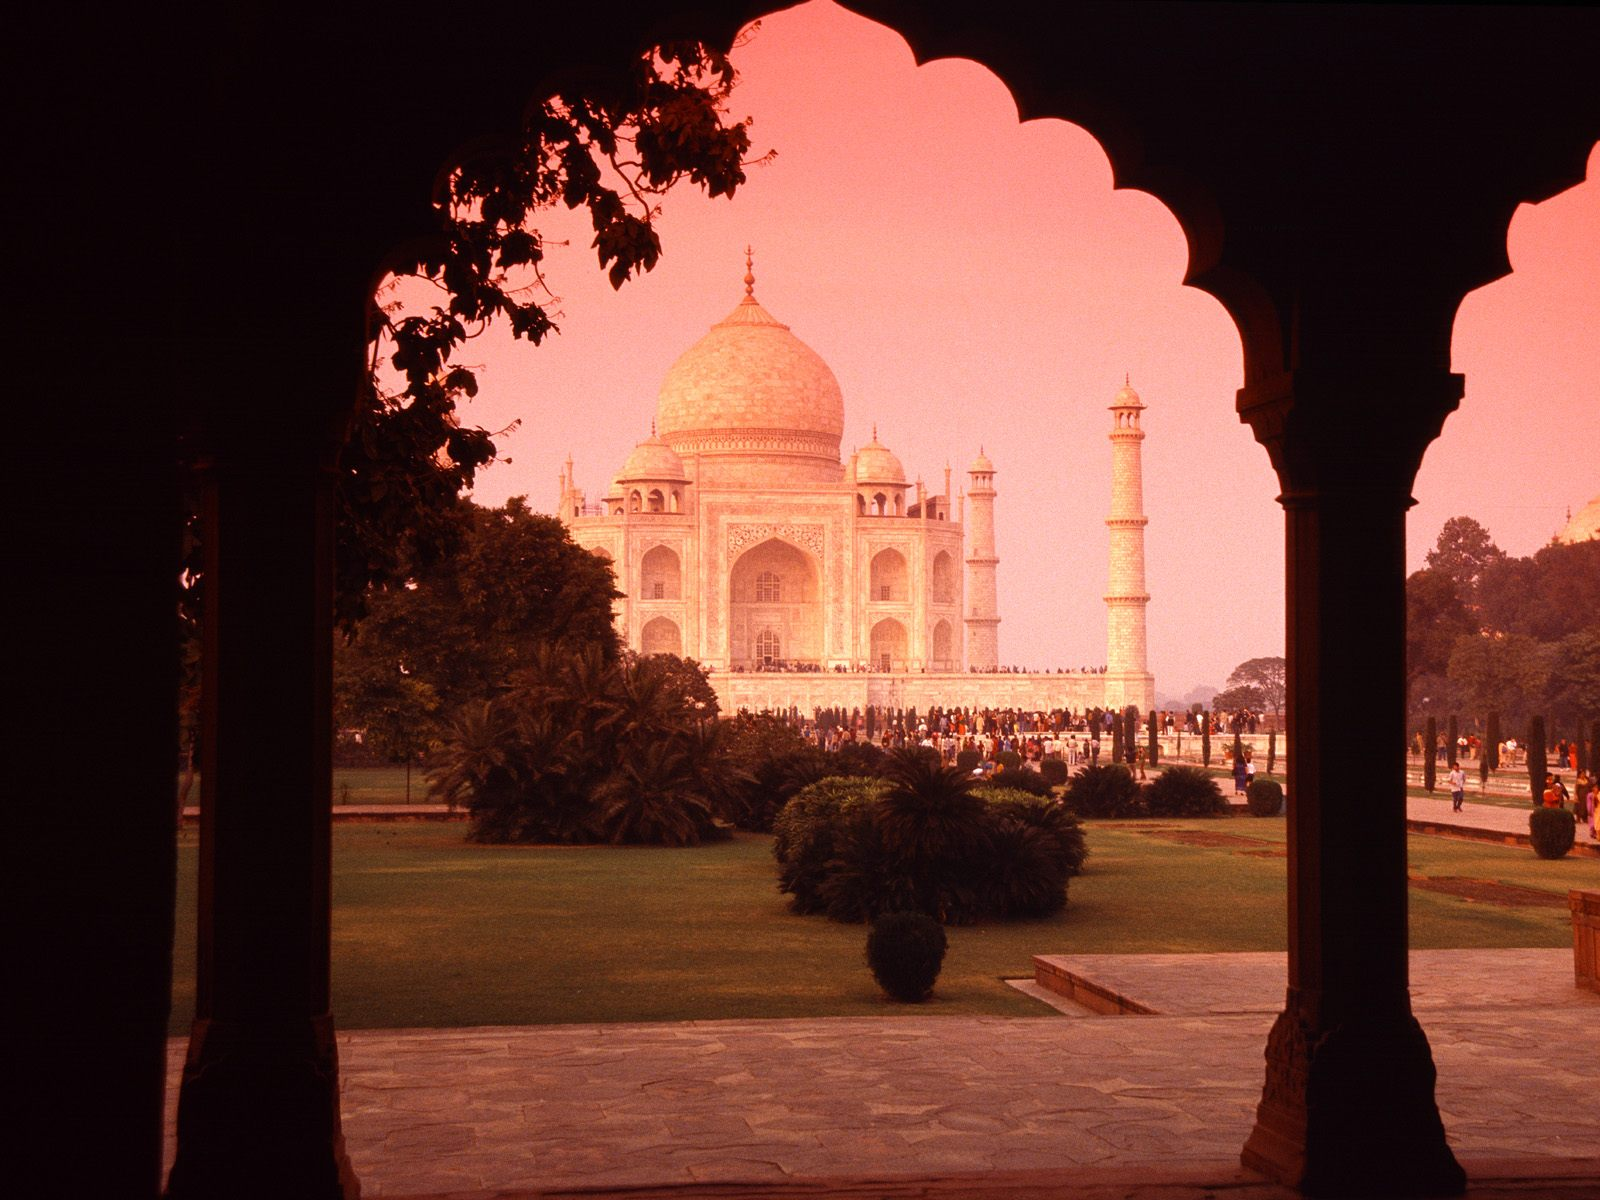 Architectural Wonder Taj Mahal India photo or wallpaper